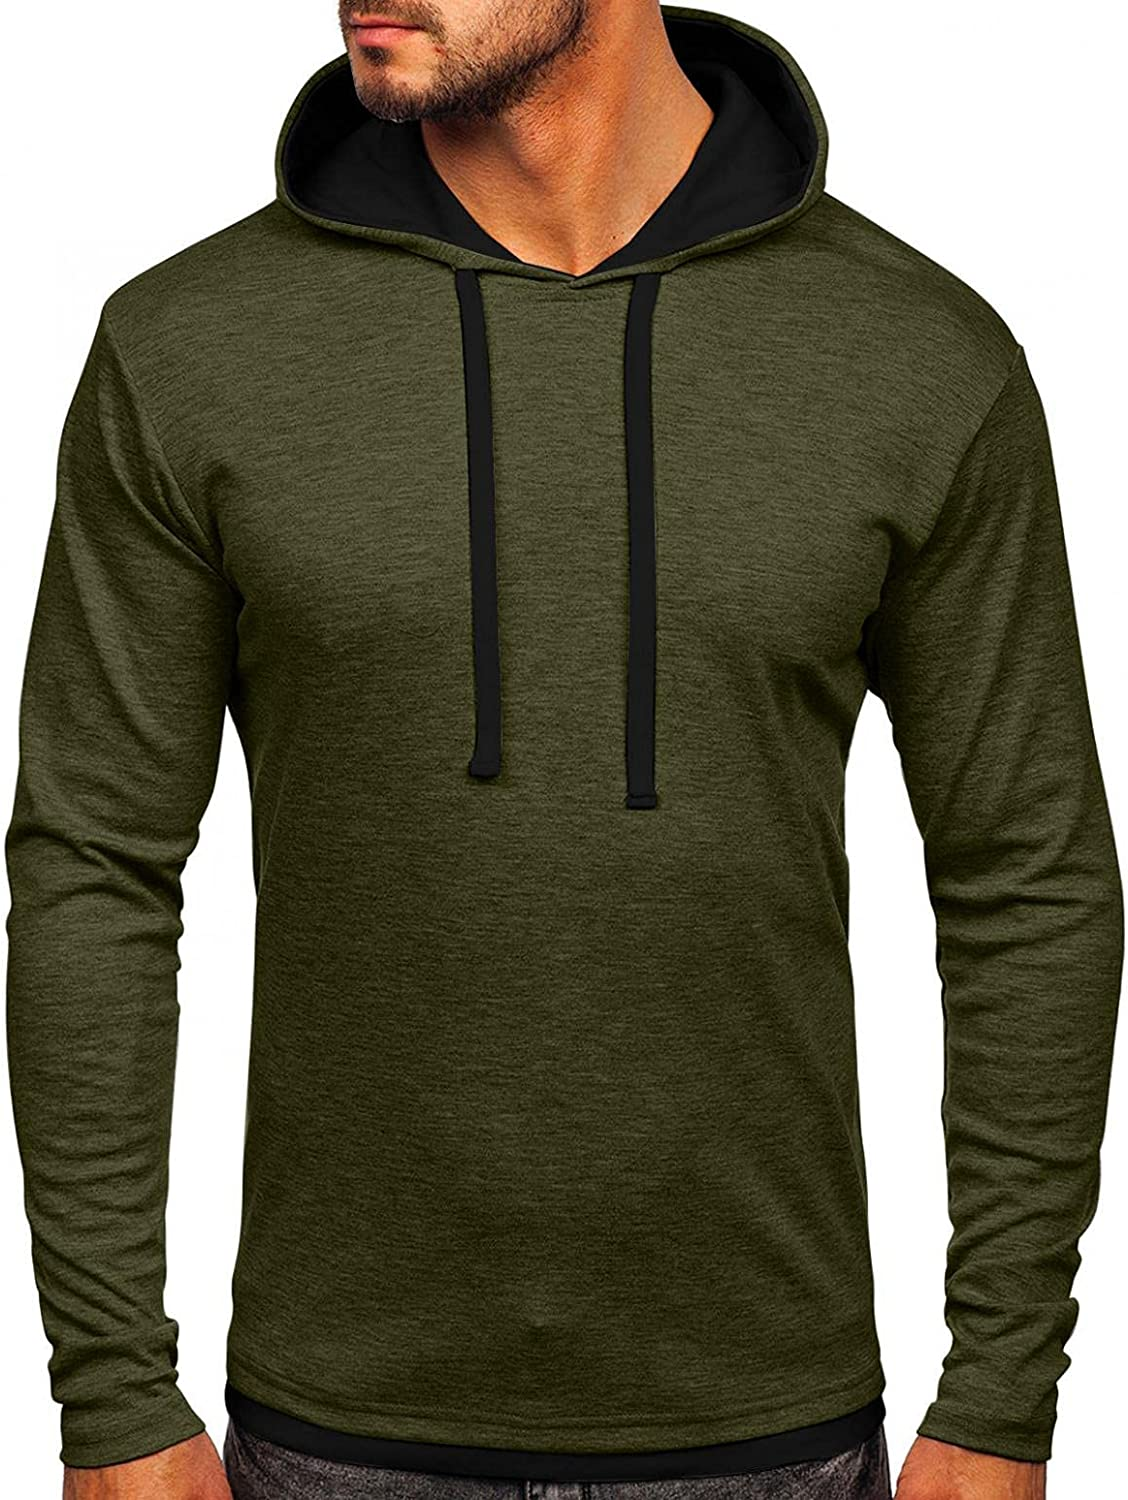 Aayomet Hoodies Sweatshirts for Men Solid Tops Long Sleeve Workout Athletic Hooded Pullover Blouses Shirts